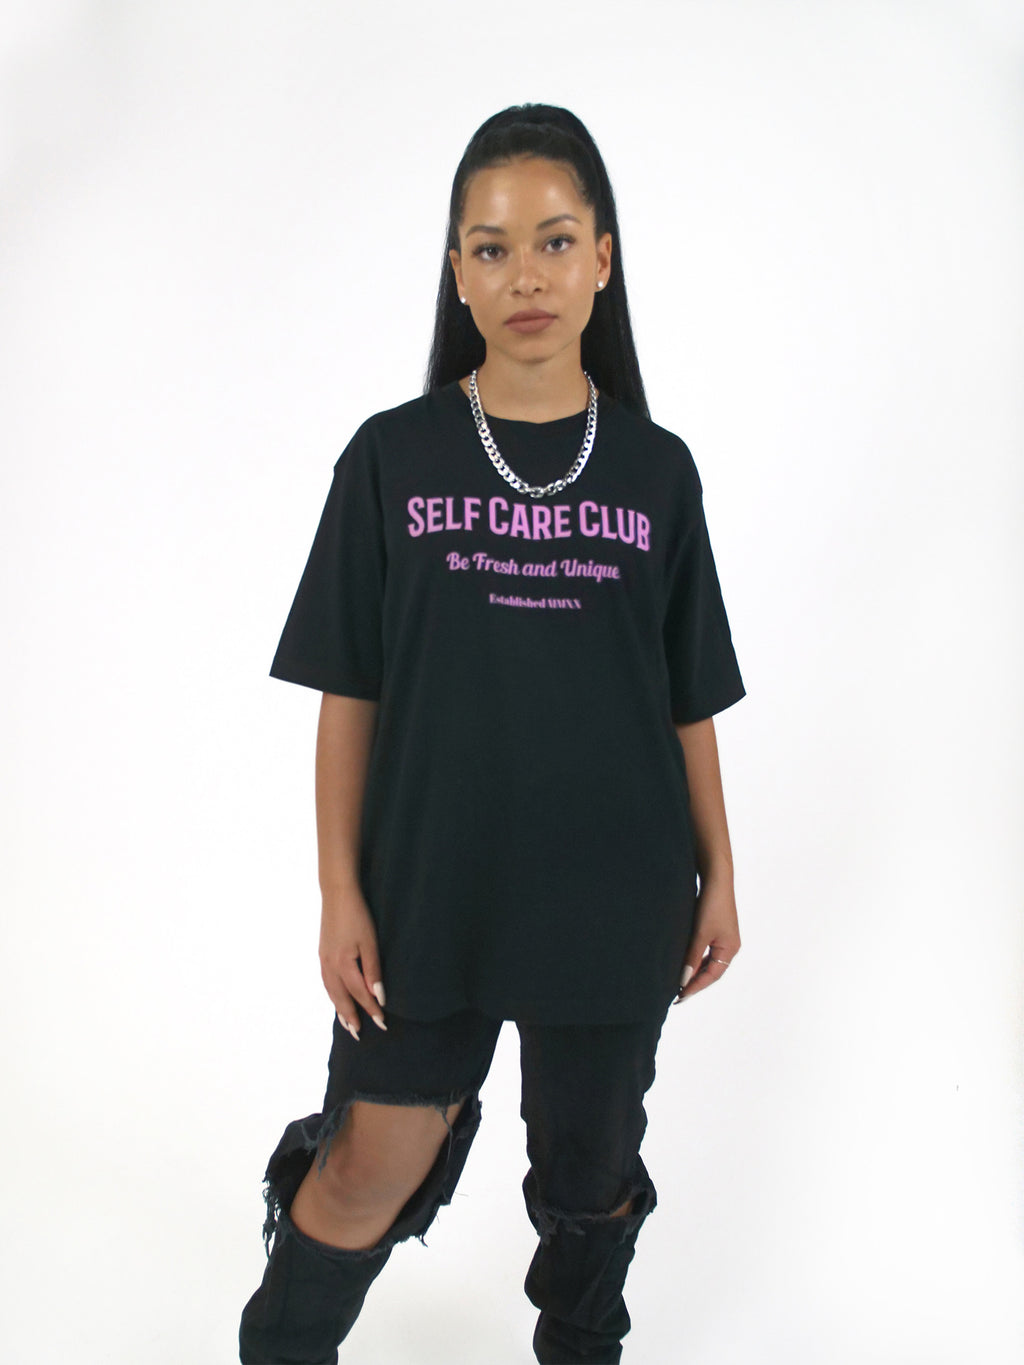 Self Care Club T-Shirt